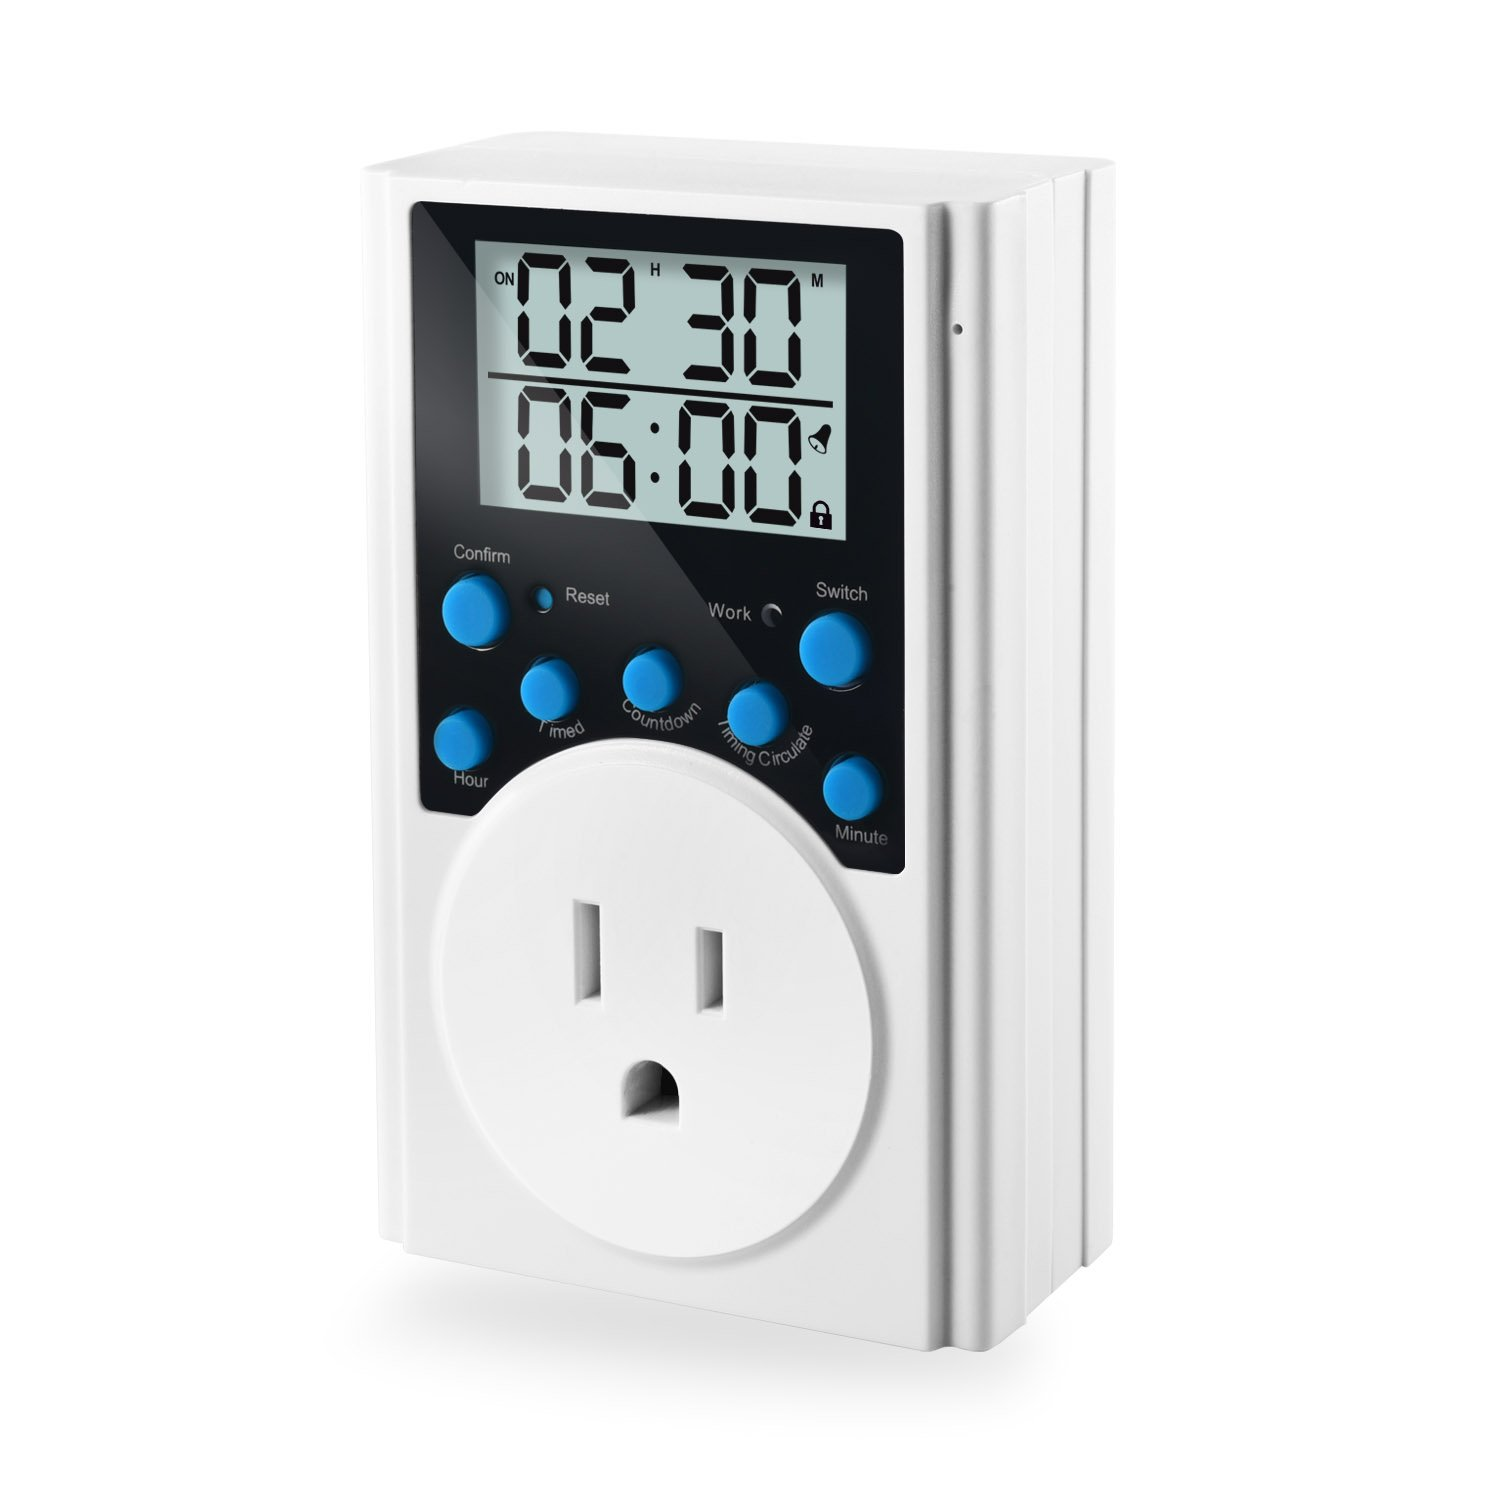 Programmable Plug-in Light Timer for Electrical Outlet Indoor Digital Timer Switch with Countdown and Interval Circulation, 1 Pack